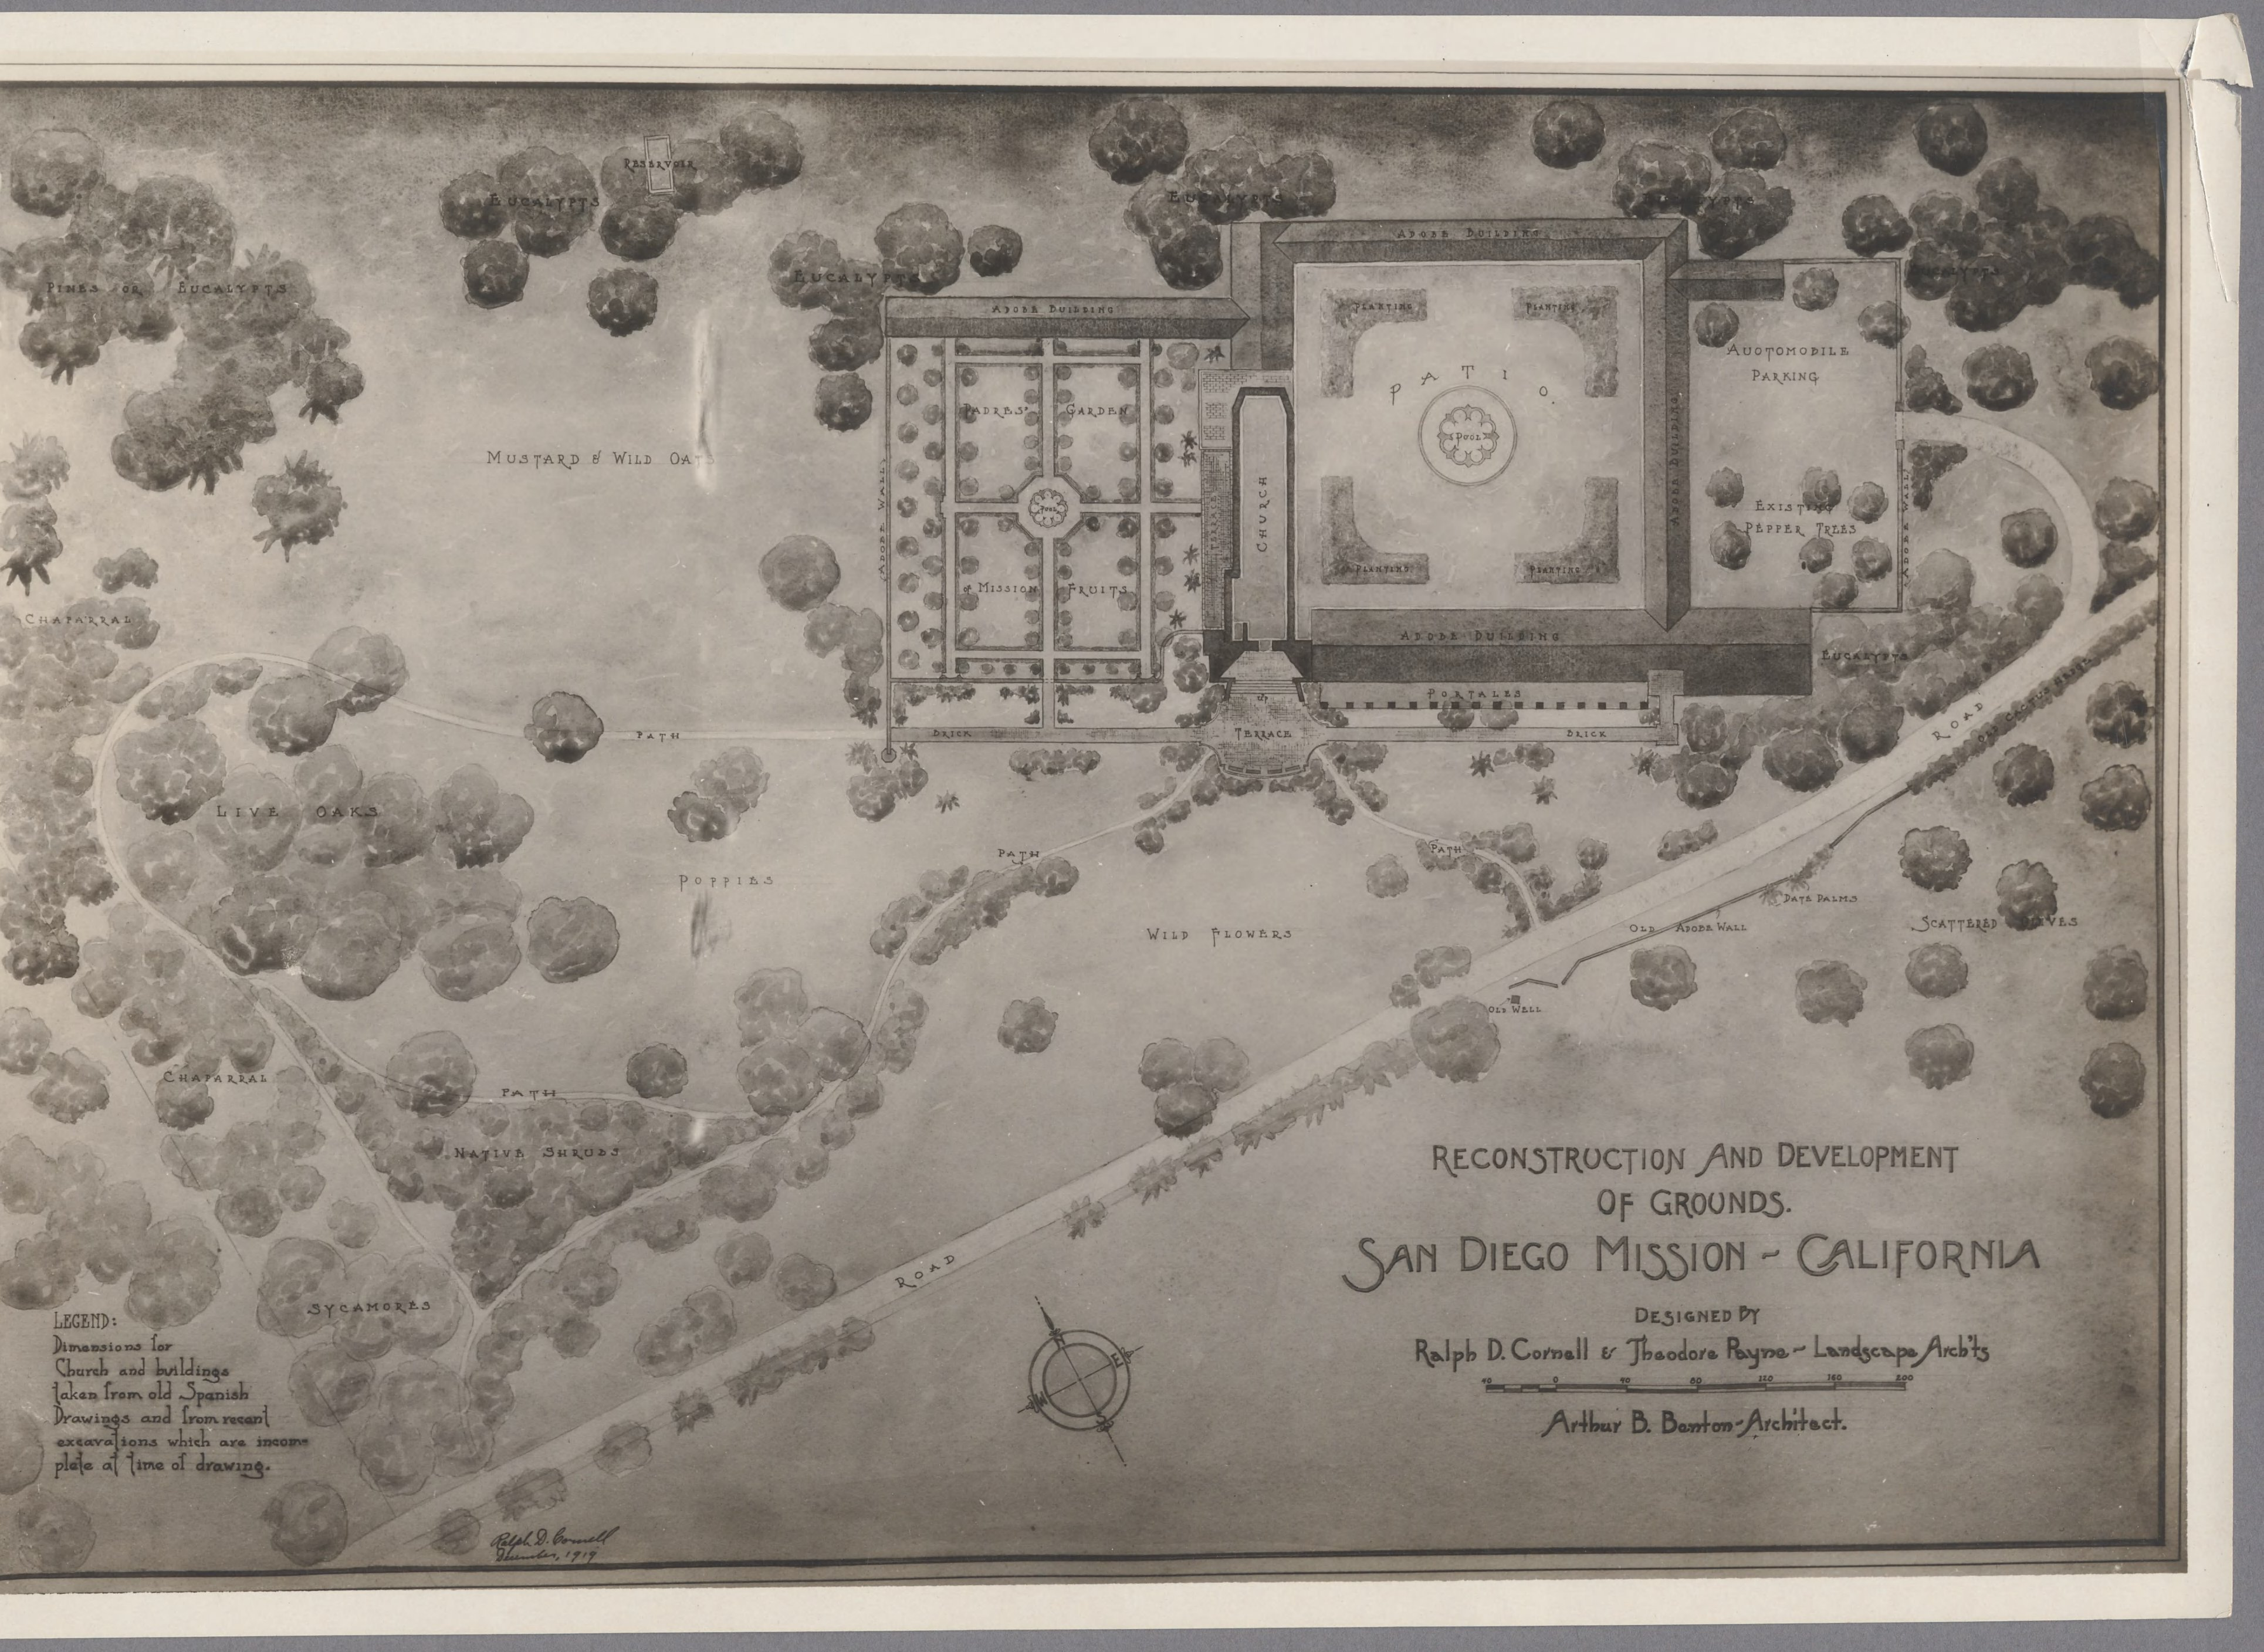 A proposed plan for reconstruction of the Mission and grounds, circa 1919 (UCLA).